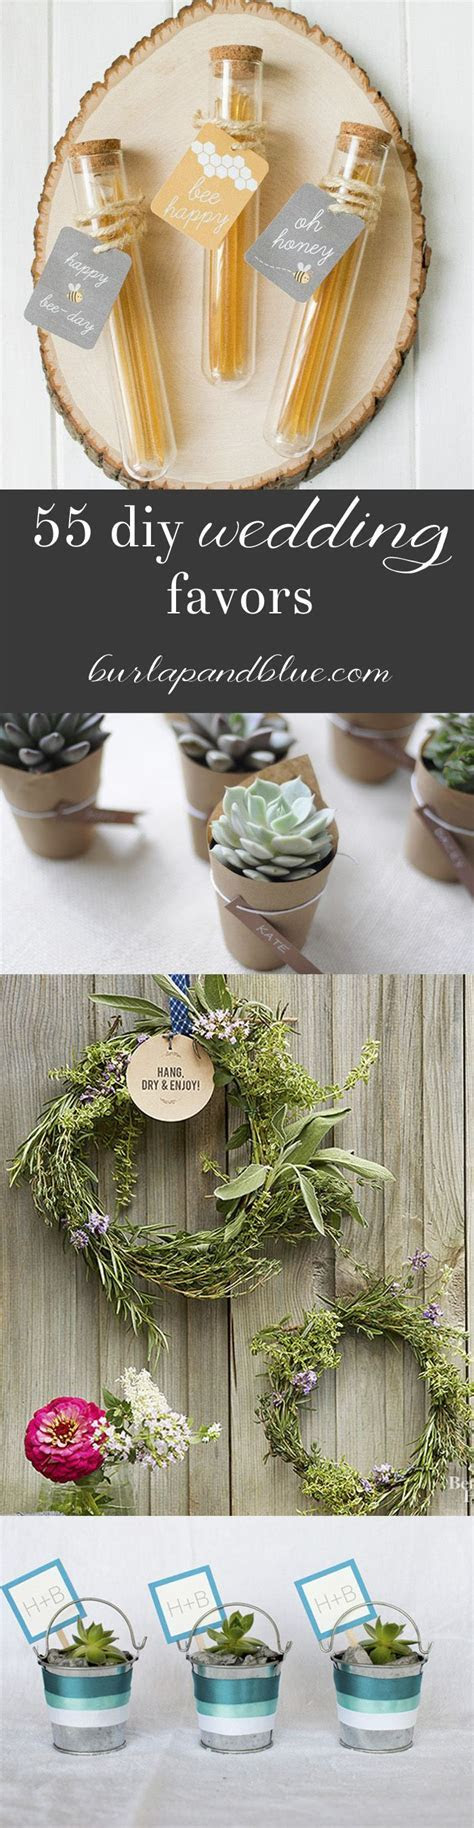 55 diy wedding favors   The Big Day ?   Wedding gifts for